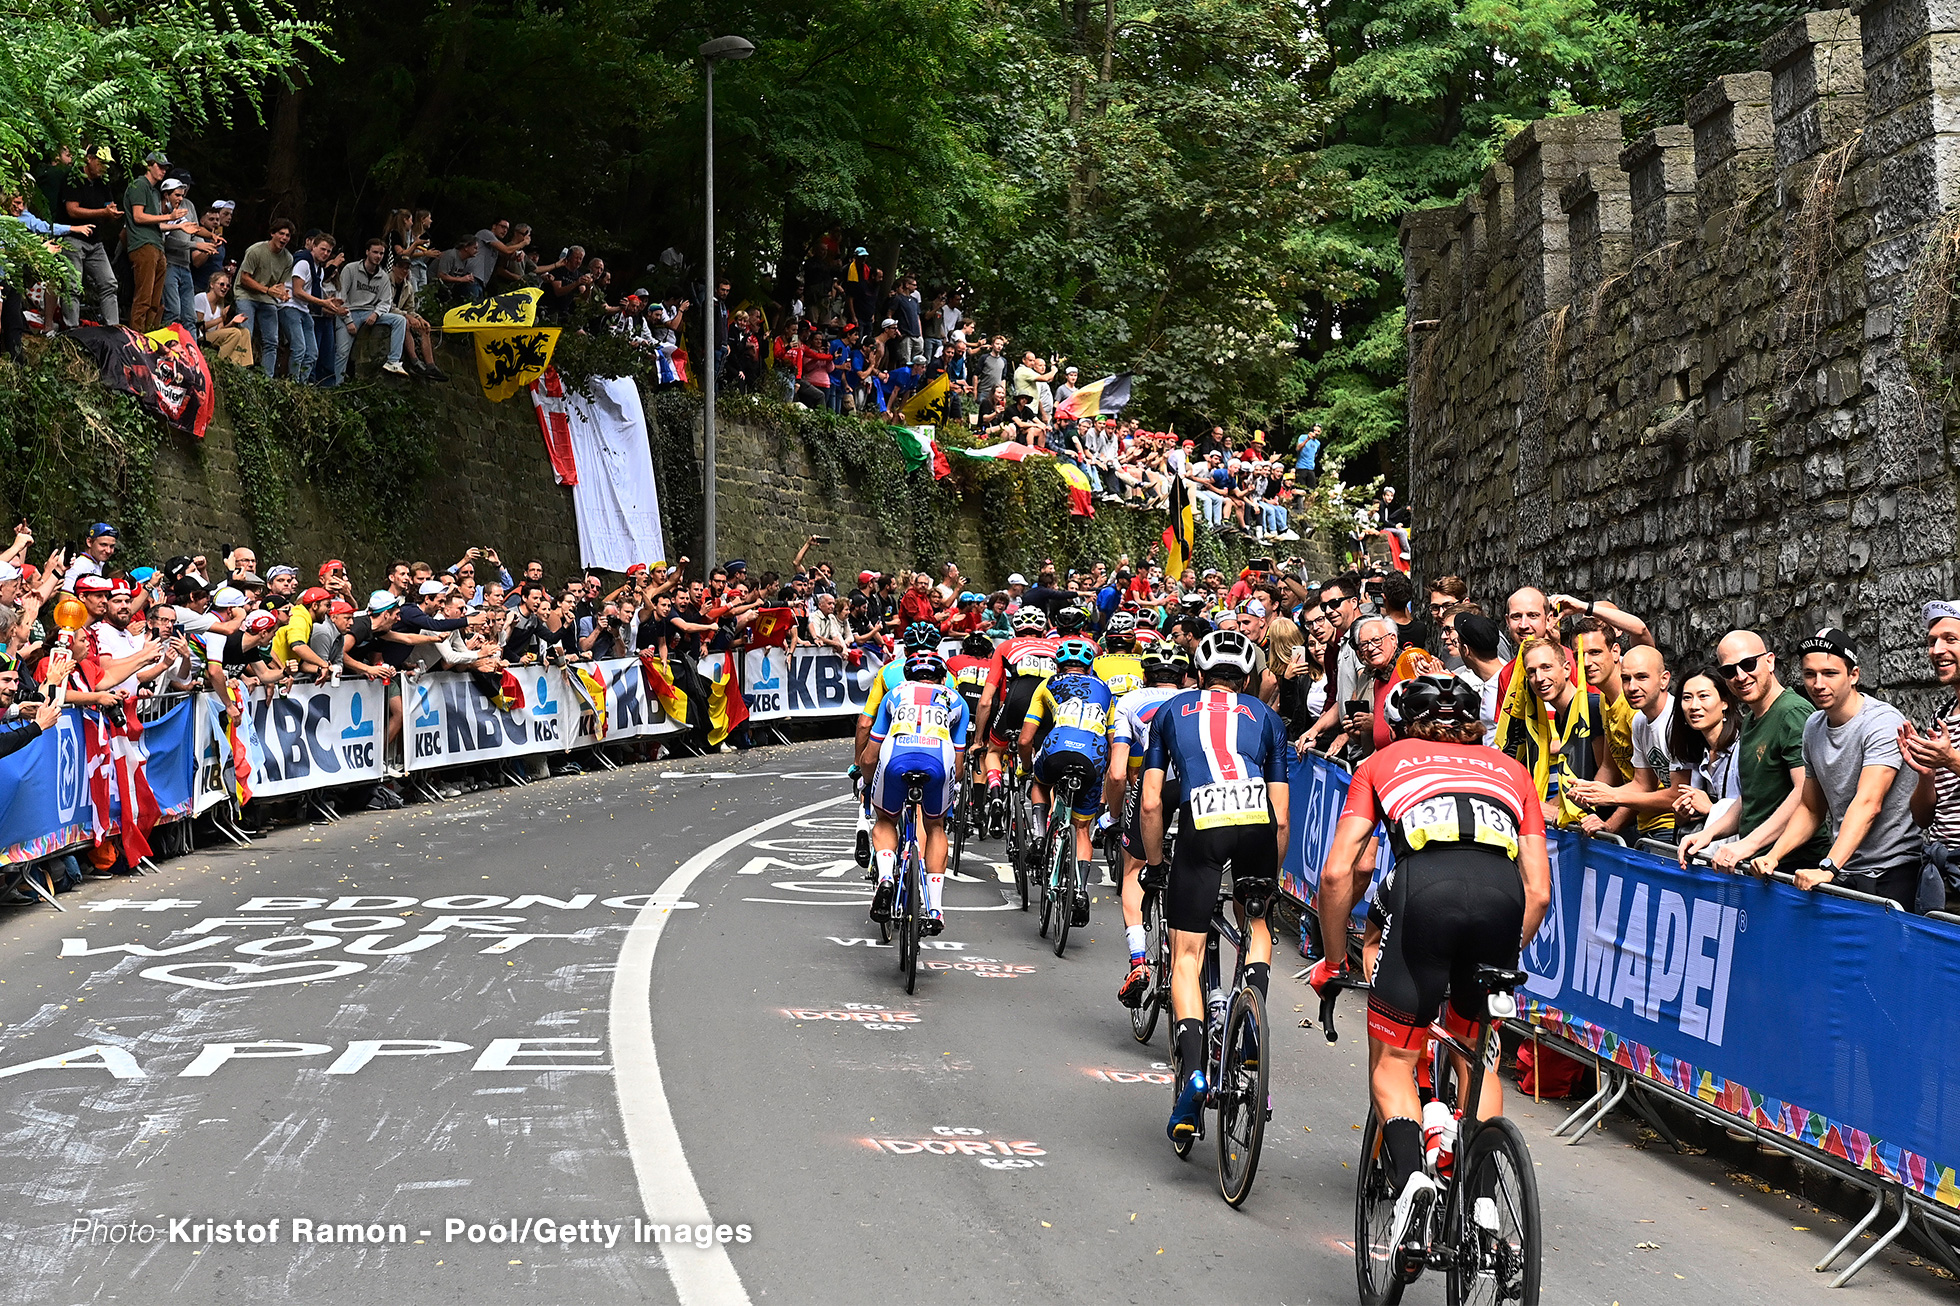 LEUVEN, BELGIUM - SEPTEMBER 26: A general view of the peloton while fans cheer during the 94th UCI Road World Championships 2021 - Men Elite Road Race a 268,3km race from Antwerp to Leuven / #flanders2021 / on September 26, 2021 in Leuven, Belgium. (Photo by Kristof Ramon - Pool/Getty Images)